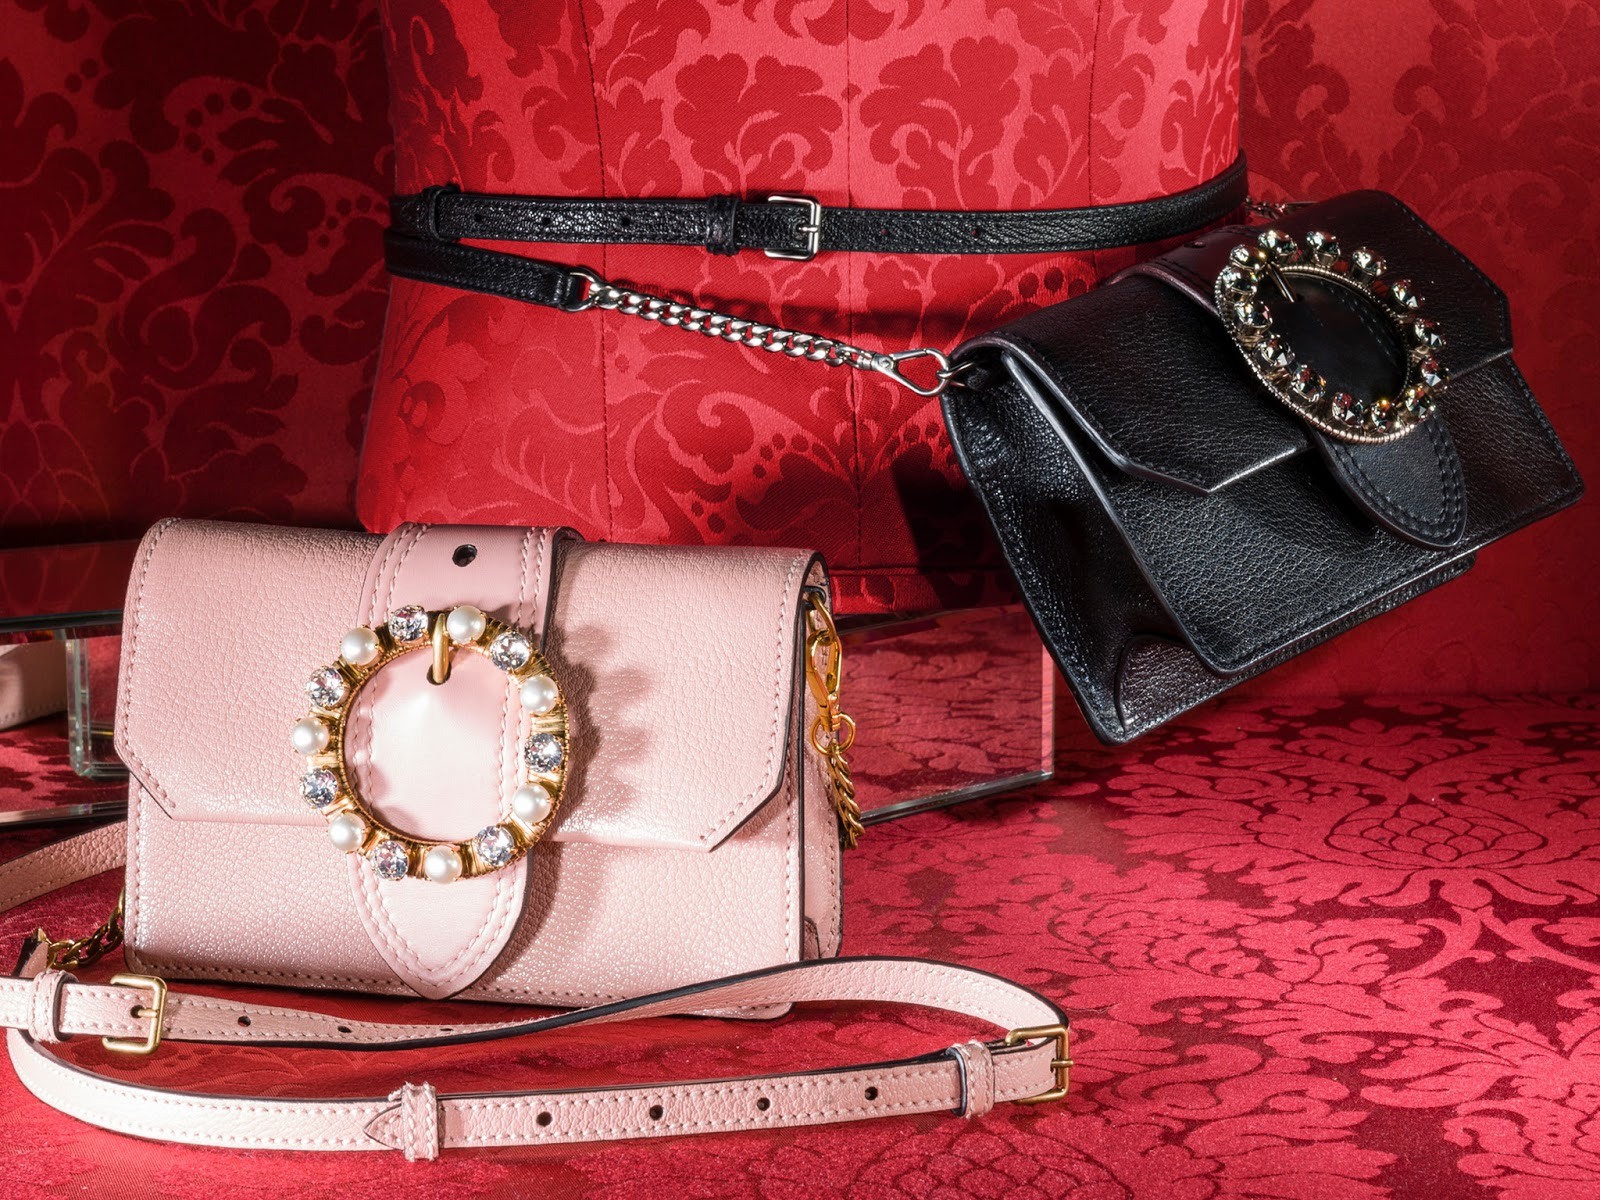 Miu Miu's Prefall 17 Bags and Accessories